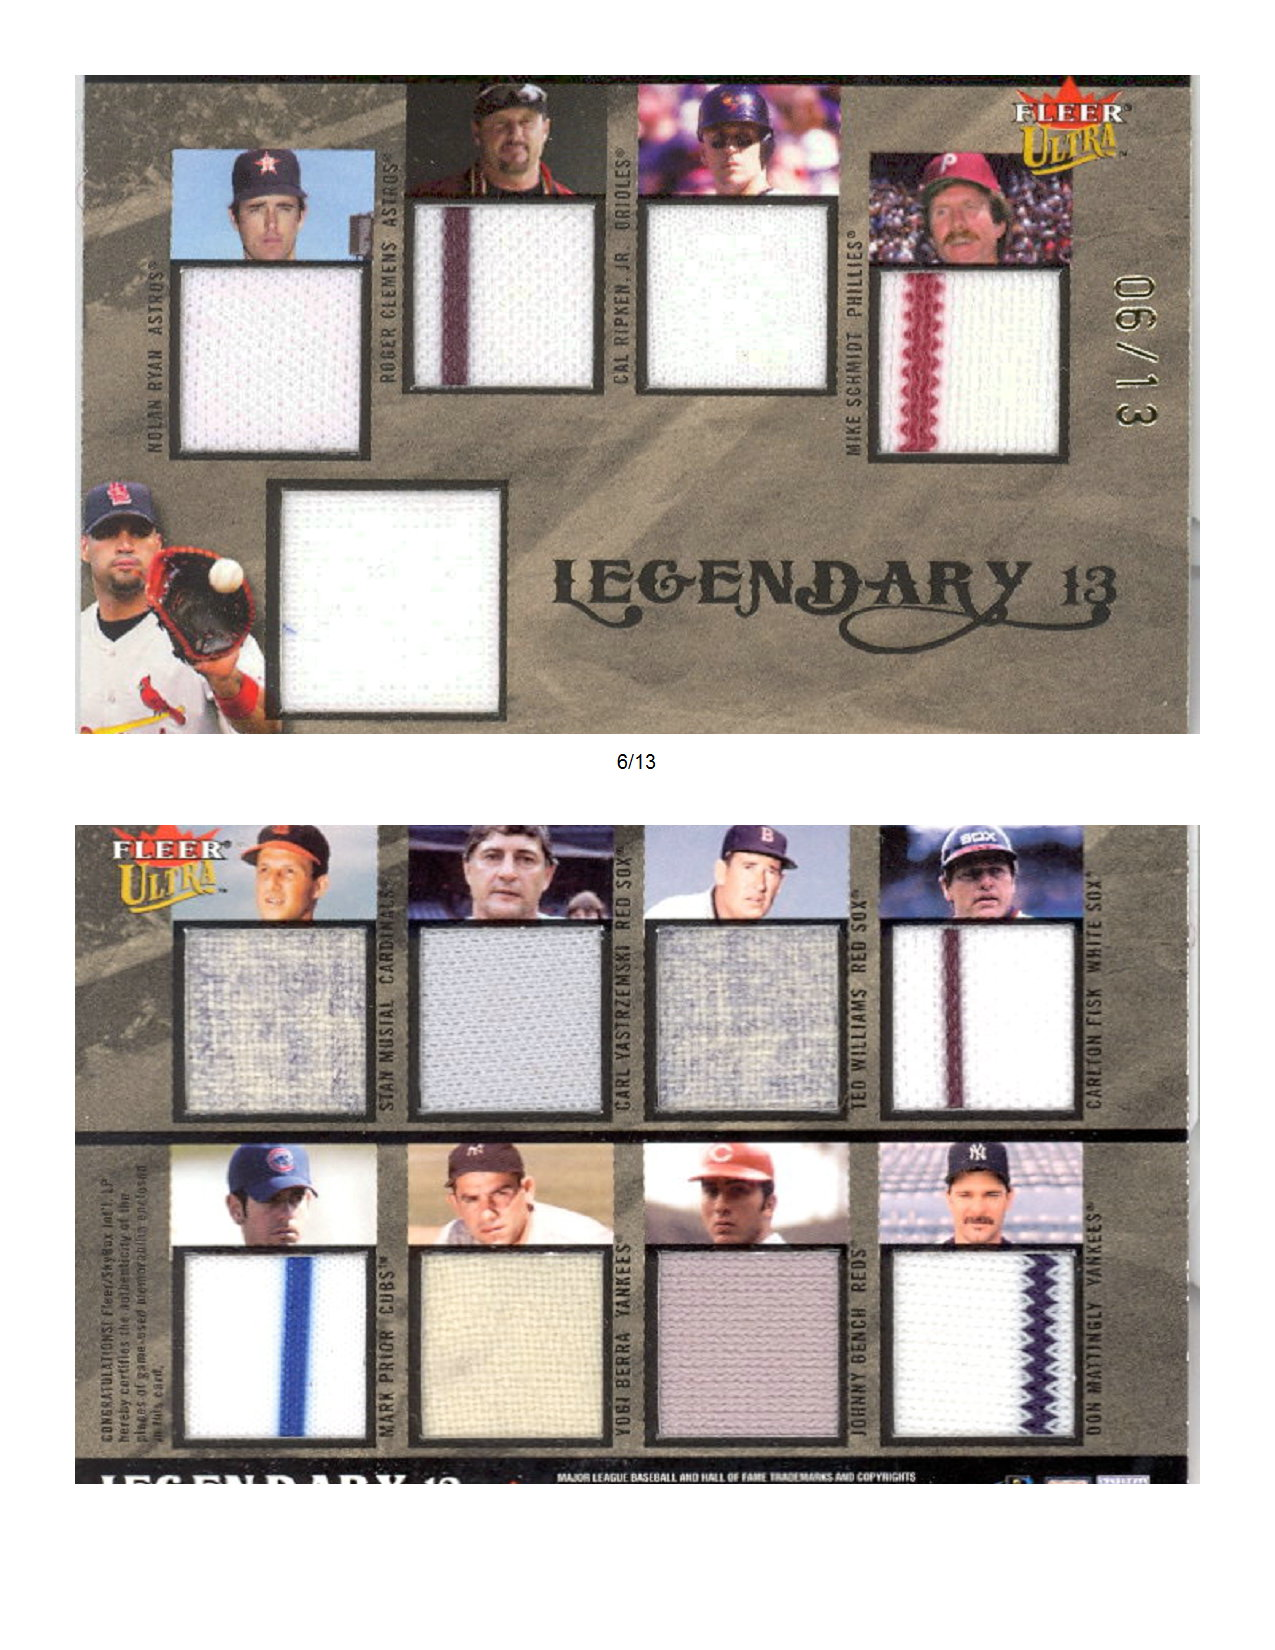 2004 Ultra Legendary 13 Collection Game Used #AP A.Pujols Oversized Jsy